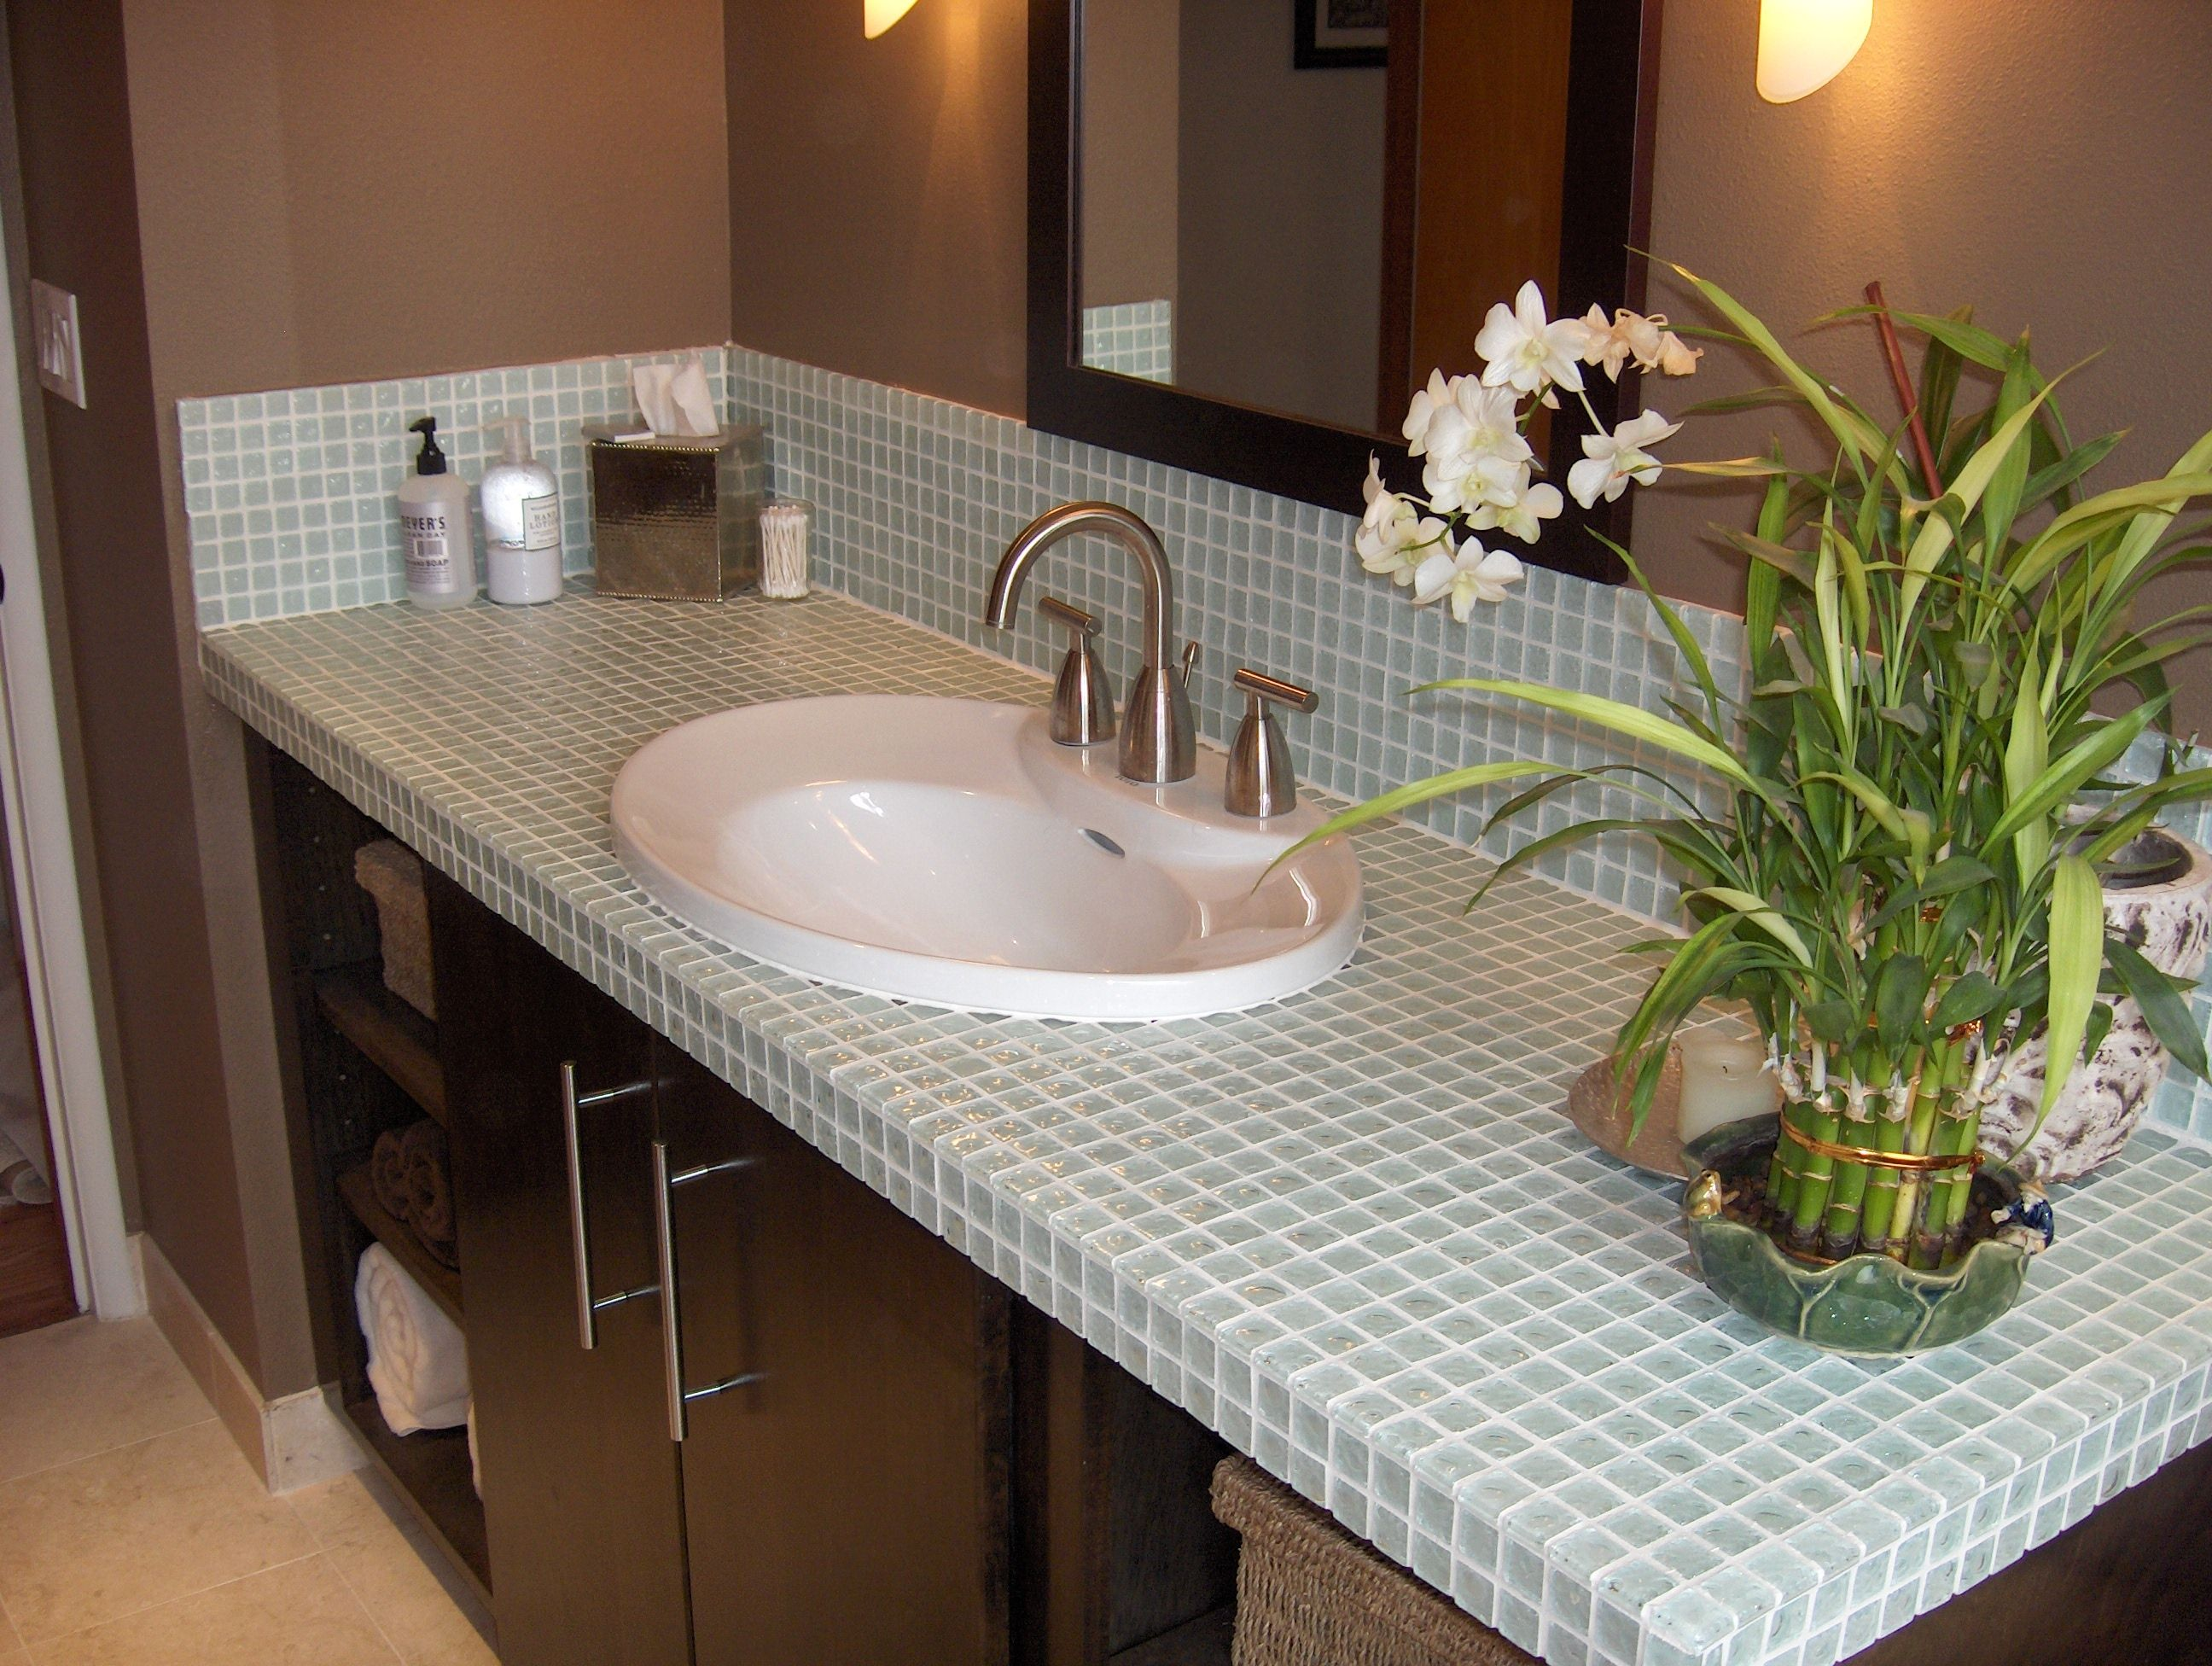 Bathroom Countertop Ideas Ceramic Tile Tiled Countertop Bathroom Bathroom Countertops Beautiful Tile Bathroom